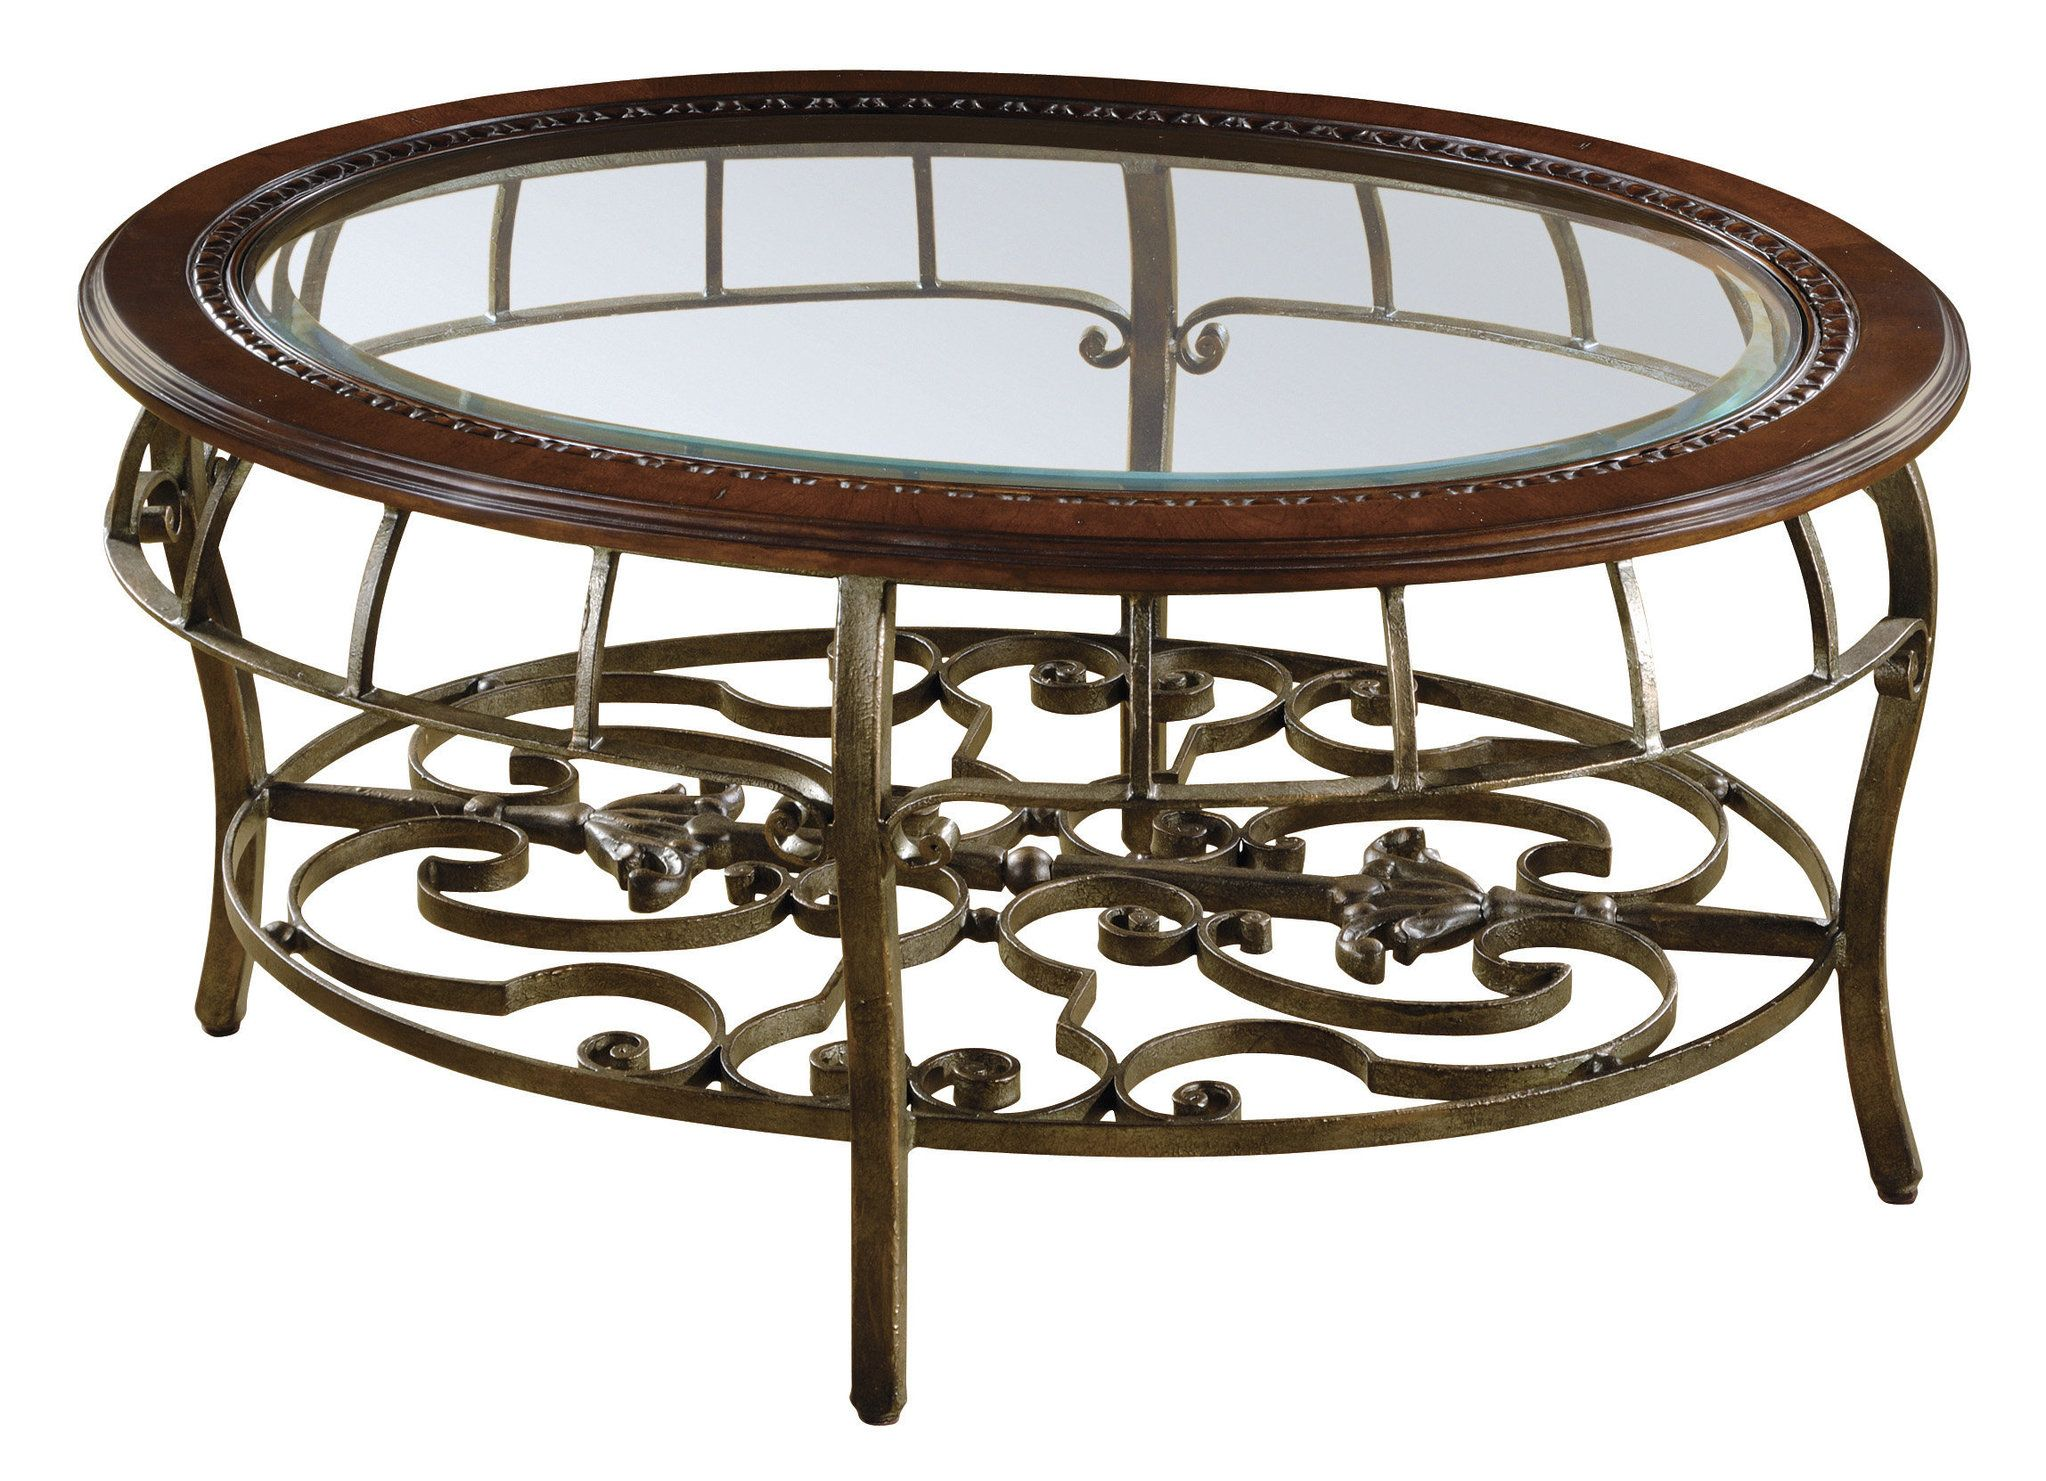 Round Beveled Glass Table Traditional Coffee Table With Metal Base 6919 Tables And Chair In 2019 Table Furniture Glass Table [ 1481 x 2046 Pixel ]